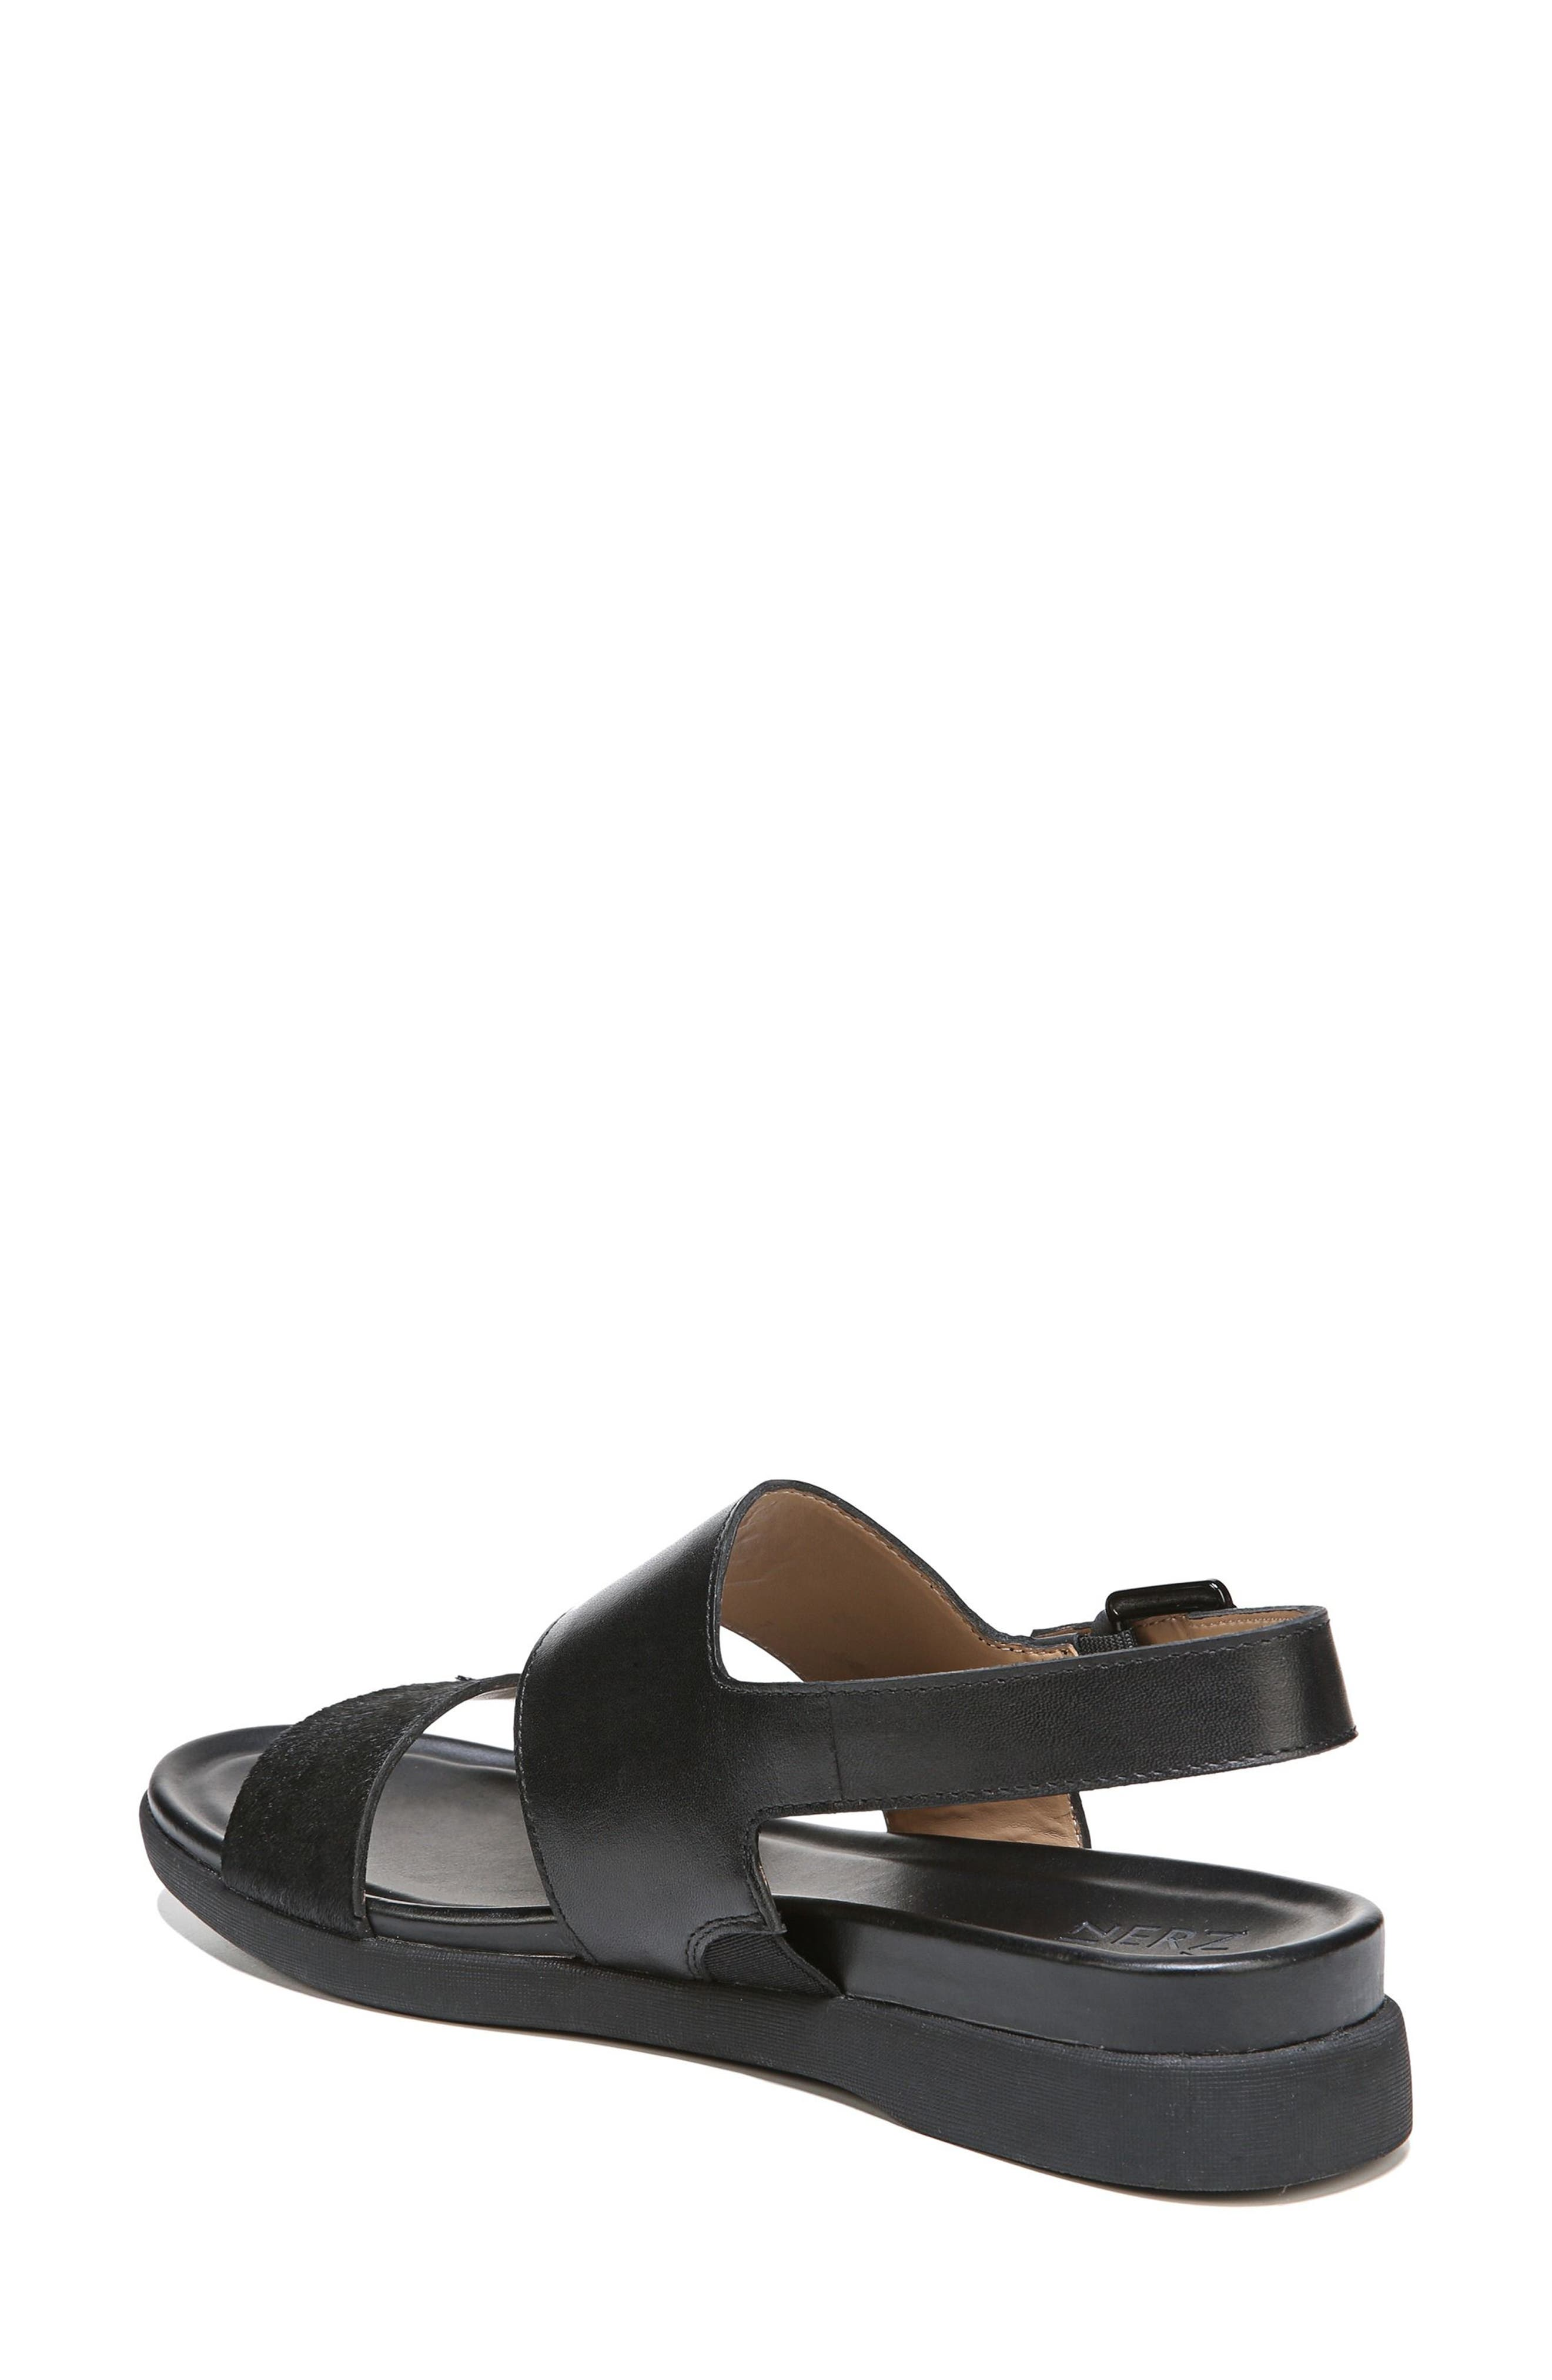 Emory Wedge Sandal,                             Alternate thumbnail 2, color,                             BLACK LEATHER